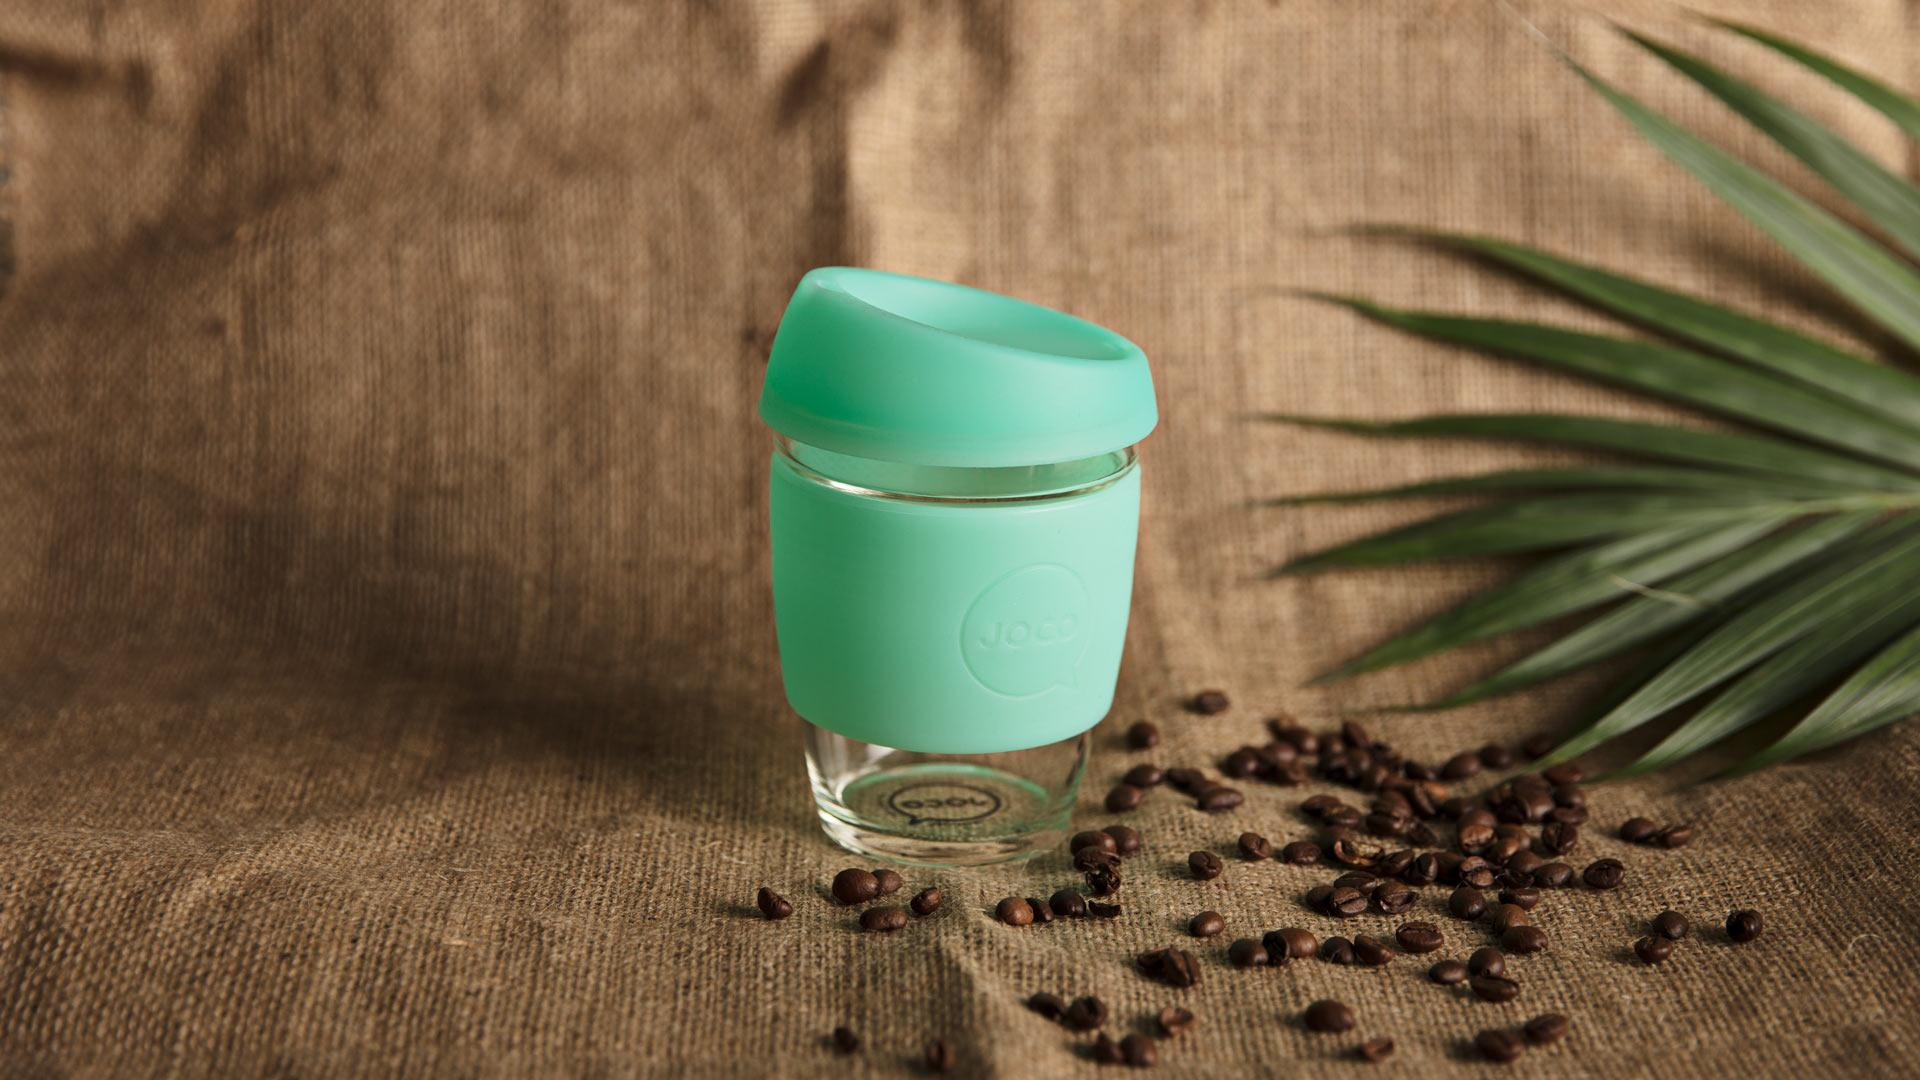 JOCO's reusable seaglass cup in vintage green